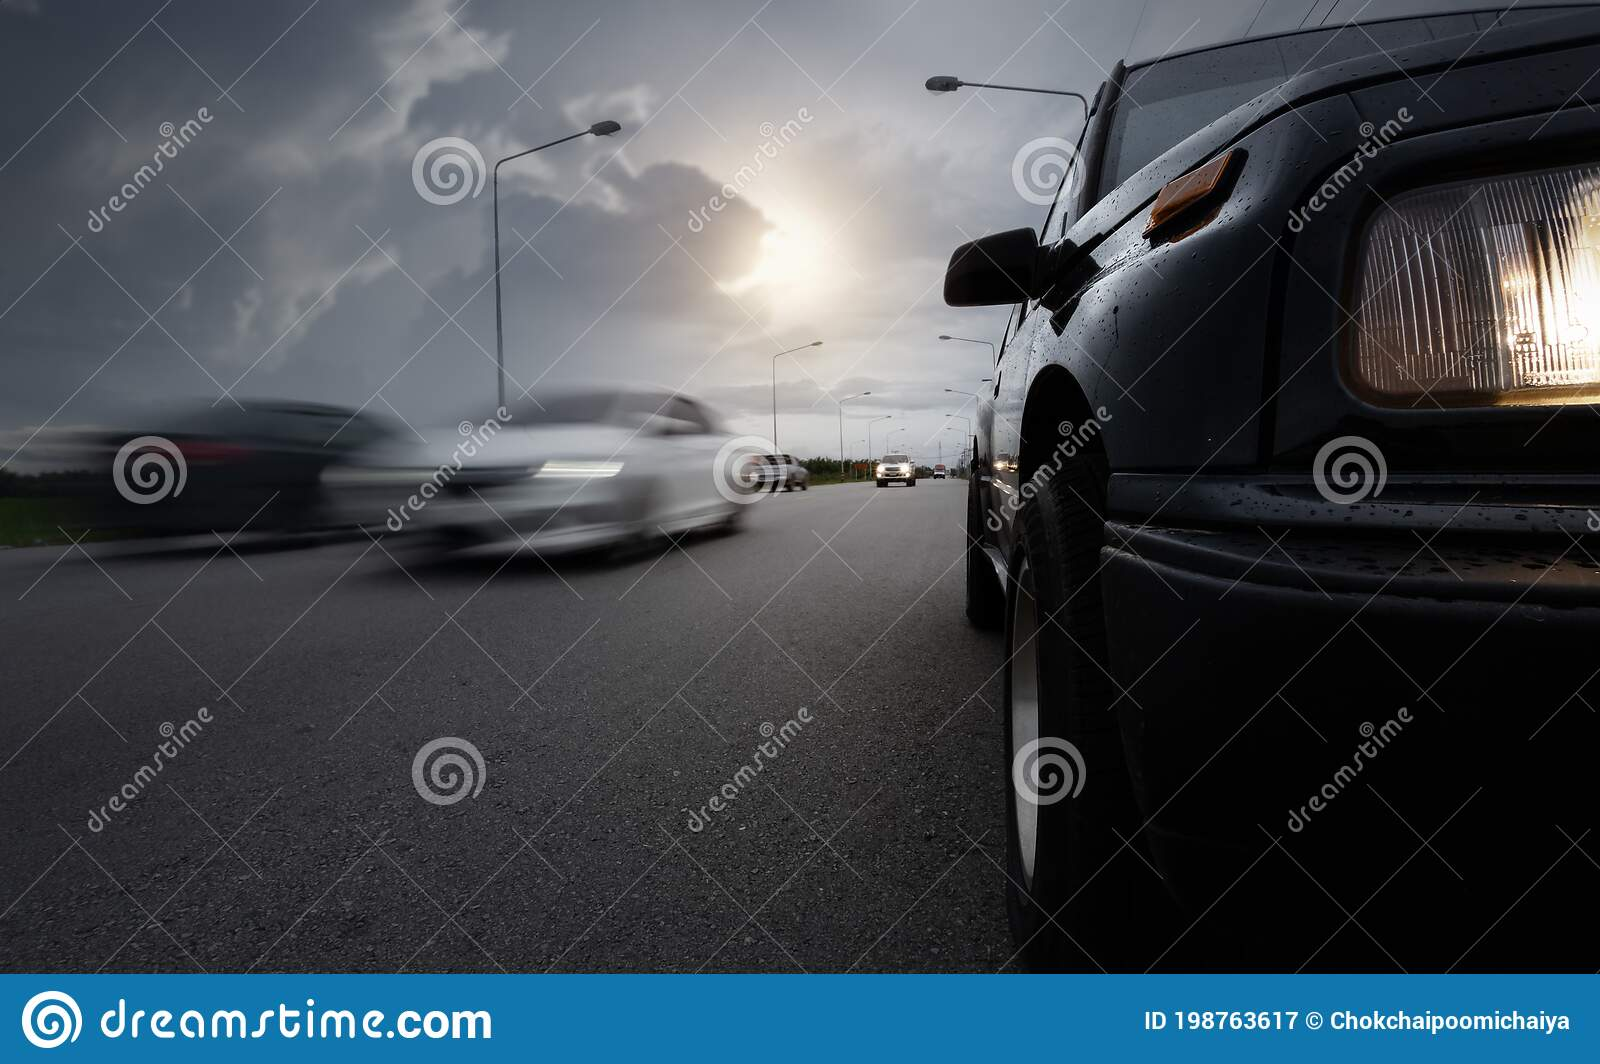 Black Compact Suv Car Stop On Wet Road With Speed Blurry Cars And Storm Clouds As Background Stock Image Image Of Depression Cloudscape 198763617